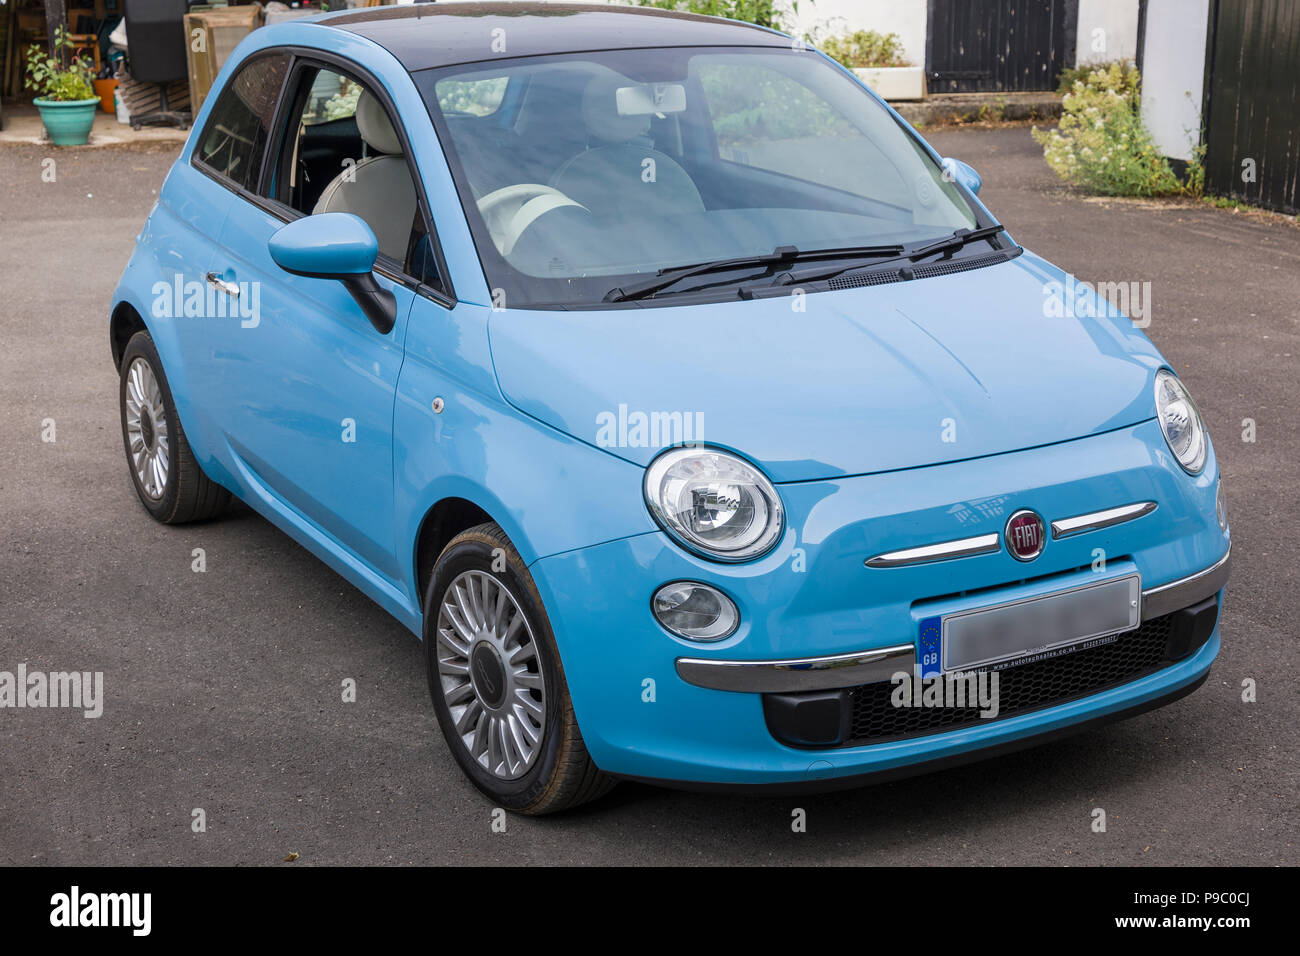 Fiat Mini Stock Photos Fiat Mini Stock Images Alamy